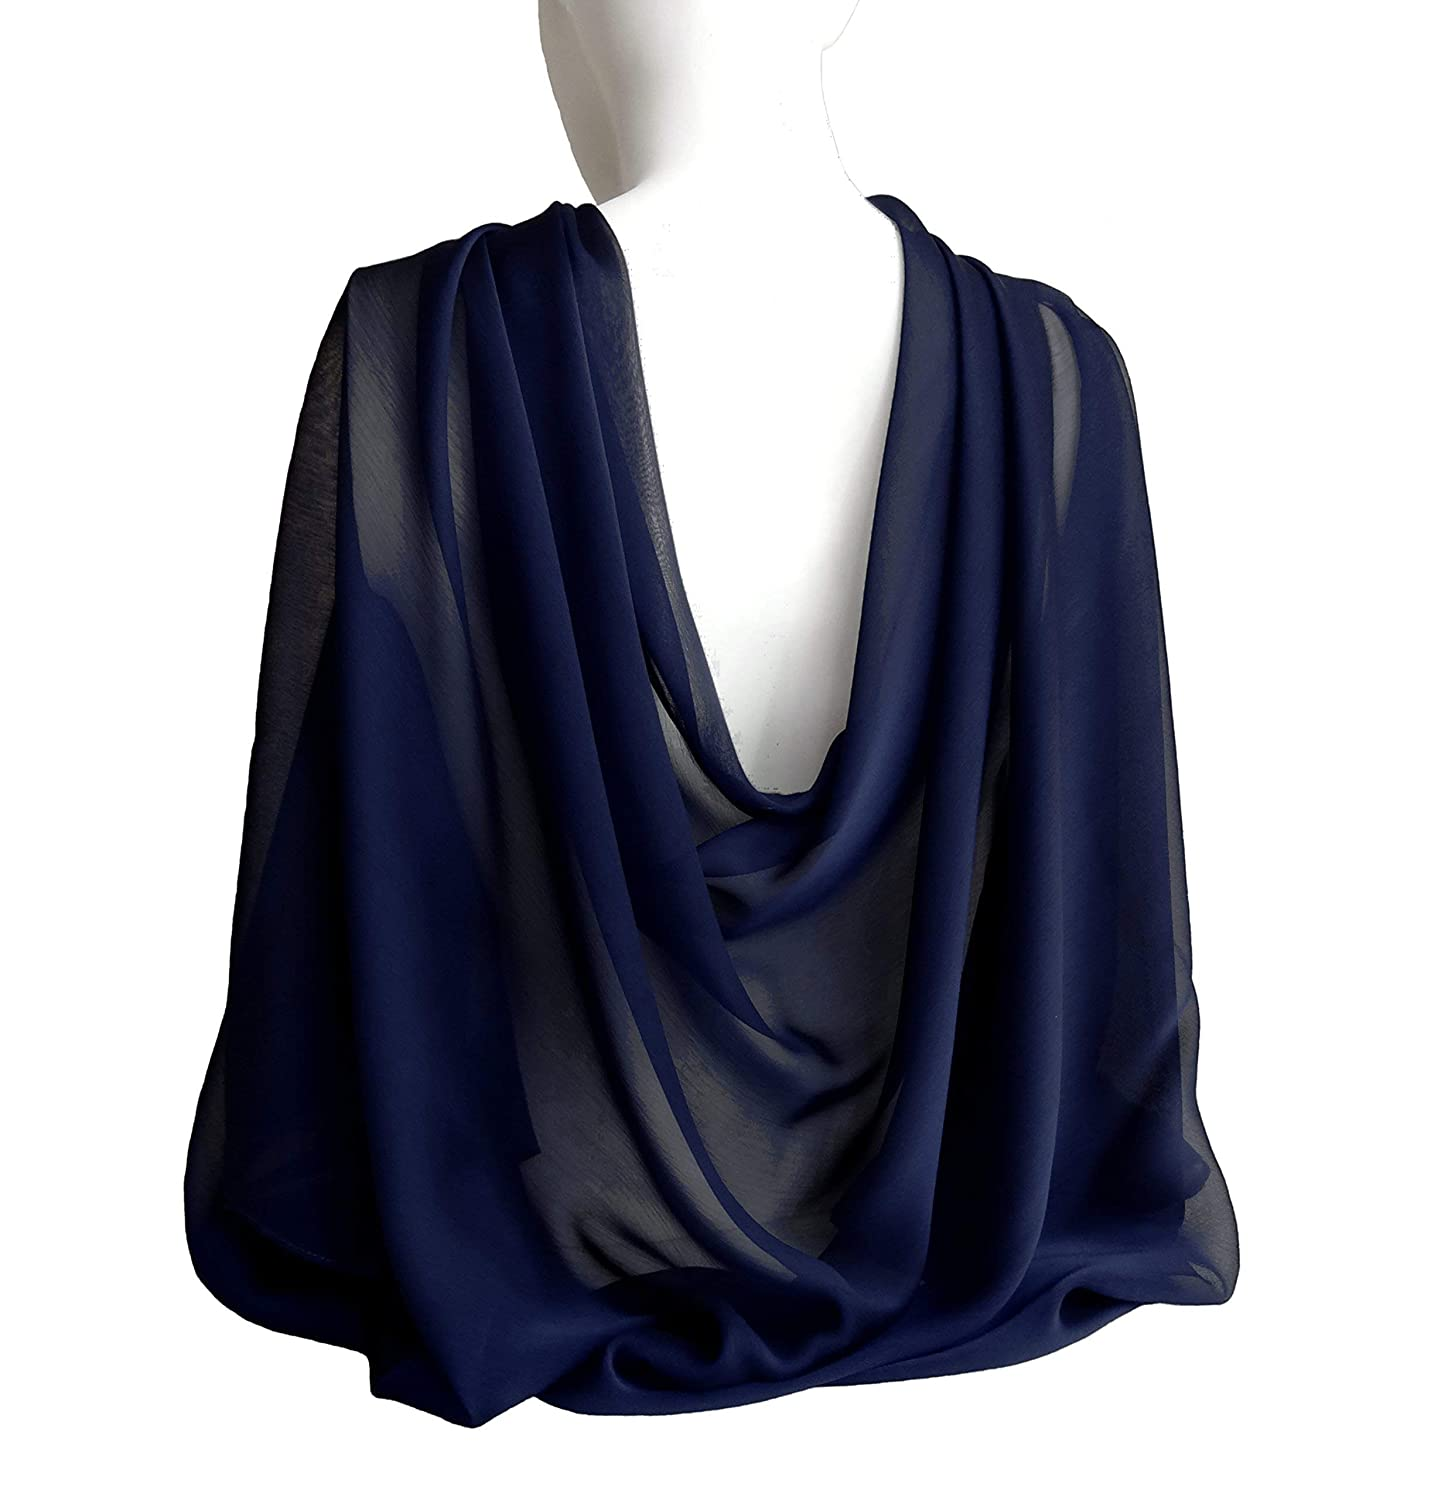 20a42abcbe8 Midnight Navy Blue Wide Long Shiny Scarf for Women Evening Wrap With Gift  Box Formal Shawl Lightweight Cocktail Chiffon Stoles Christmas Mother s day  77